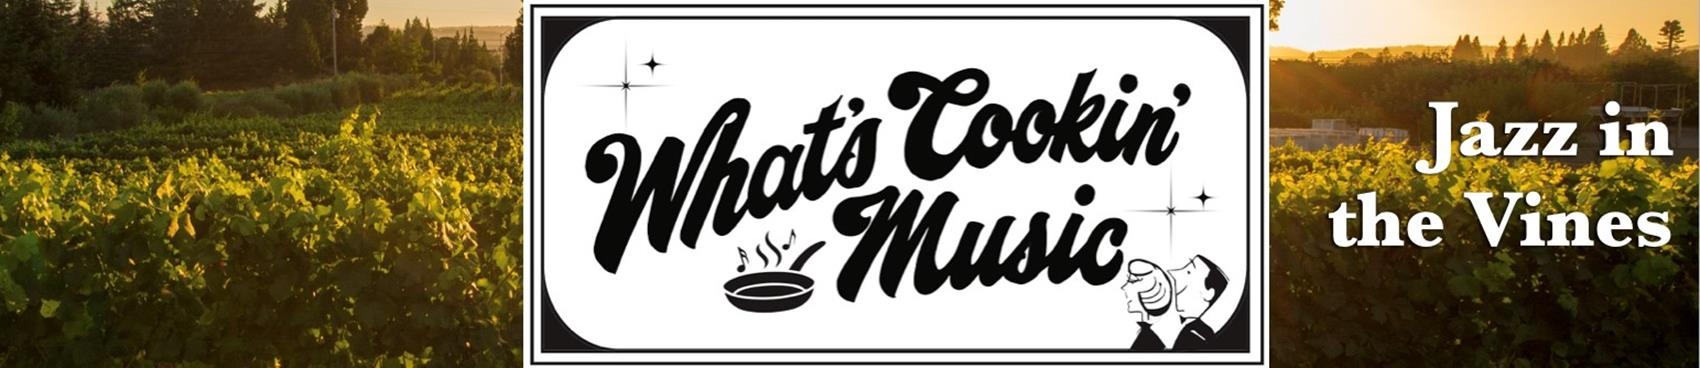 Jazz in the Vines : What's Cookin' Music